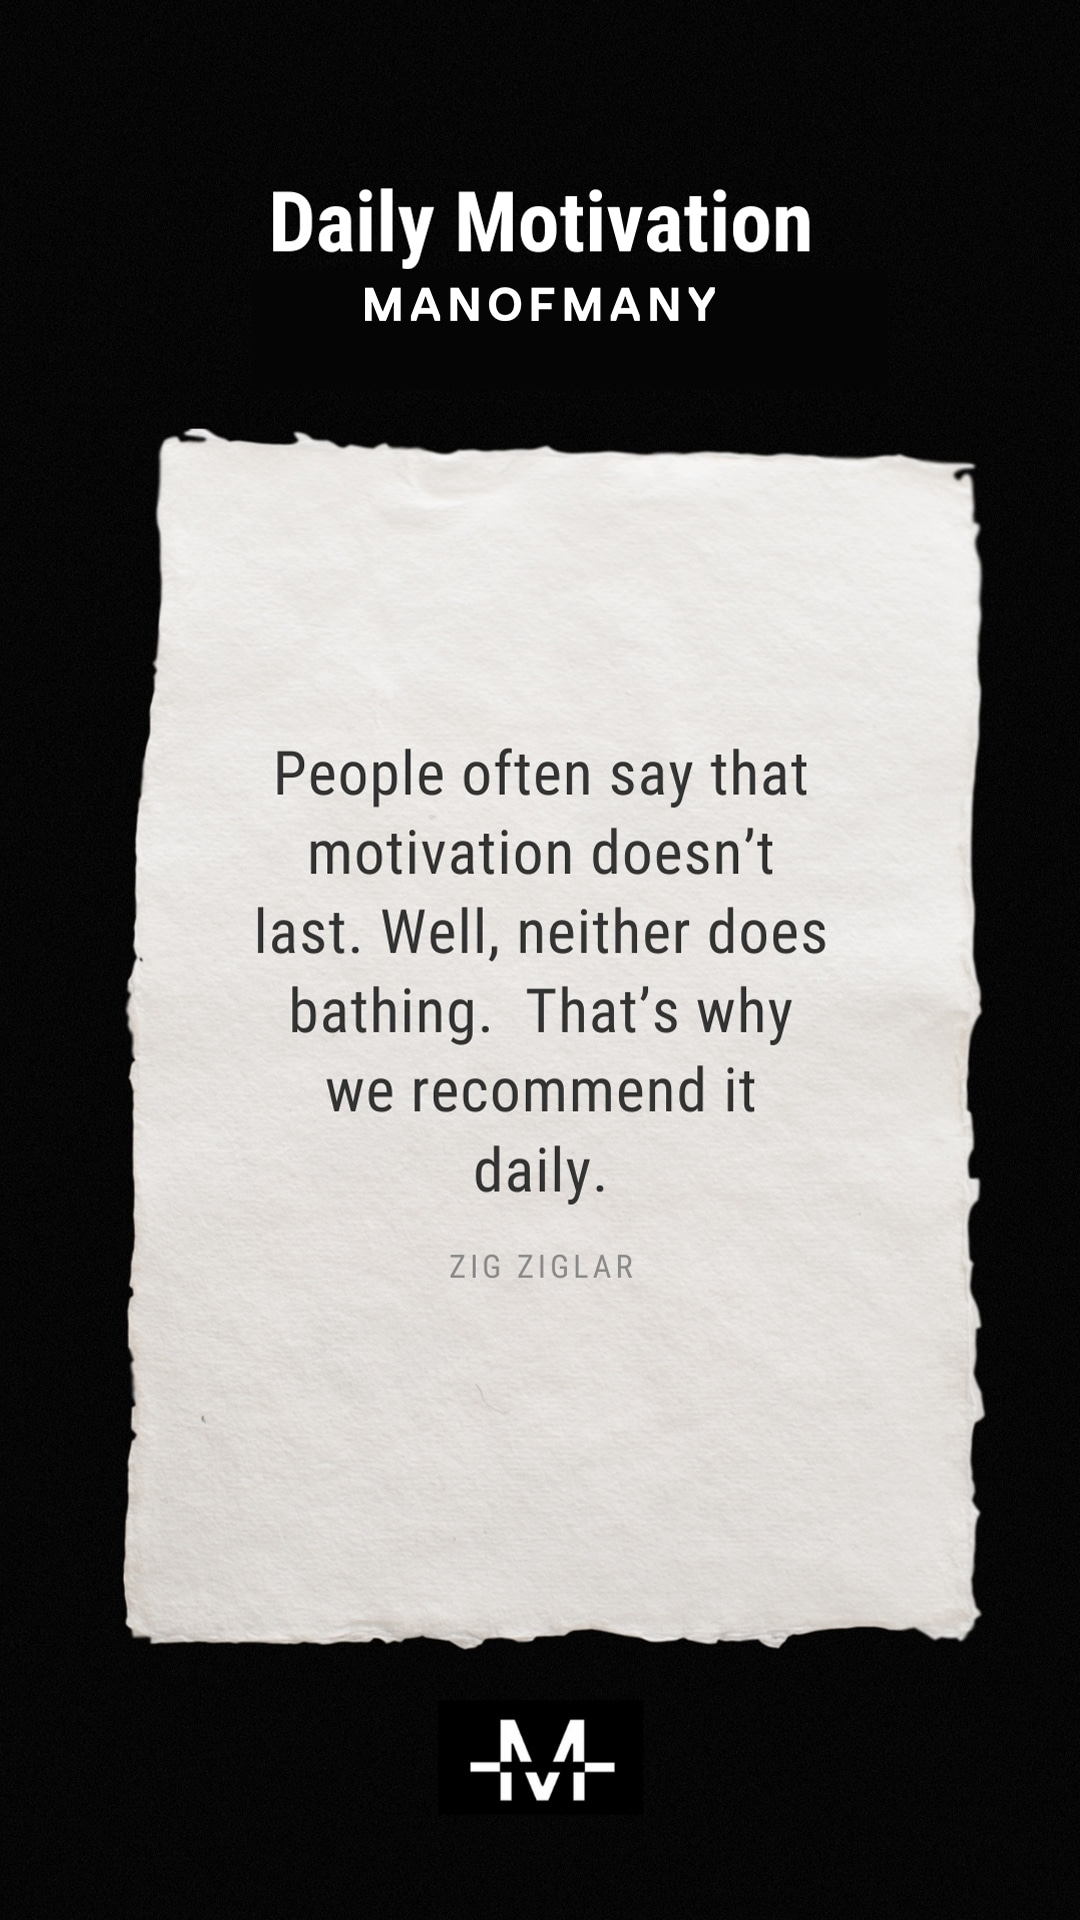 People often say that motivation doesn't last. Well, neither does bathing. That's why we recommend it daily. –Zig Ziglar quote